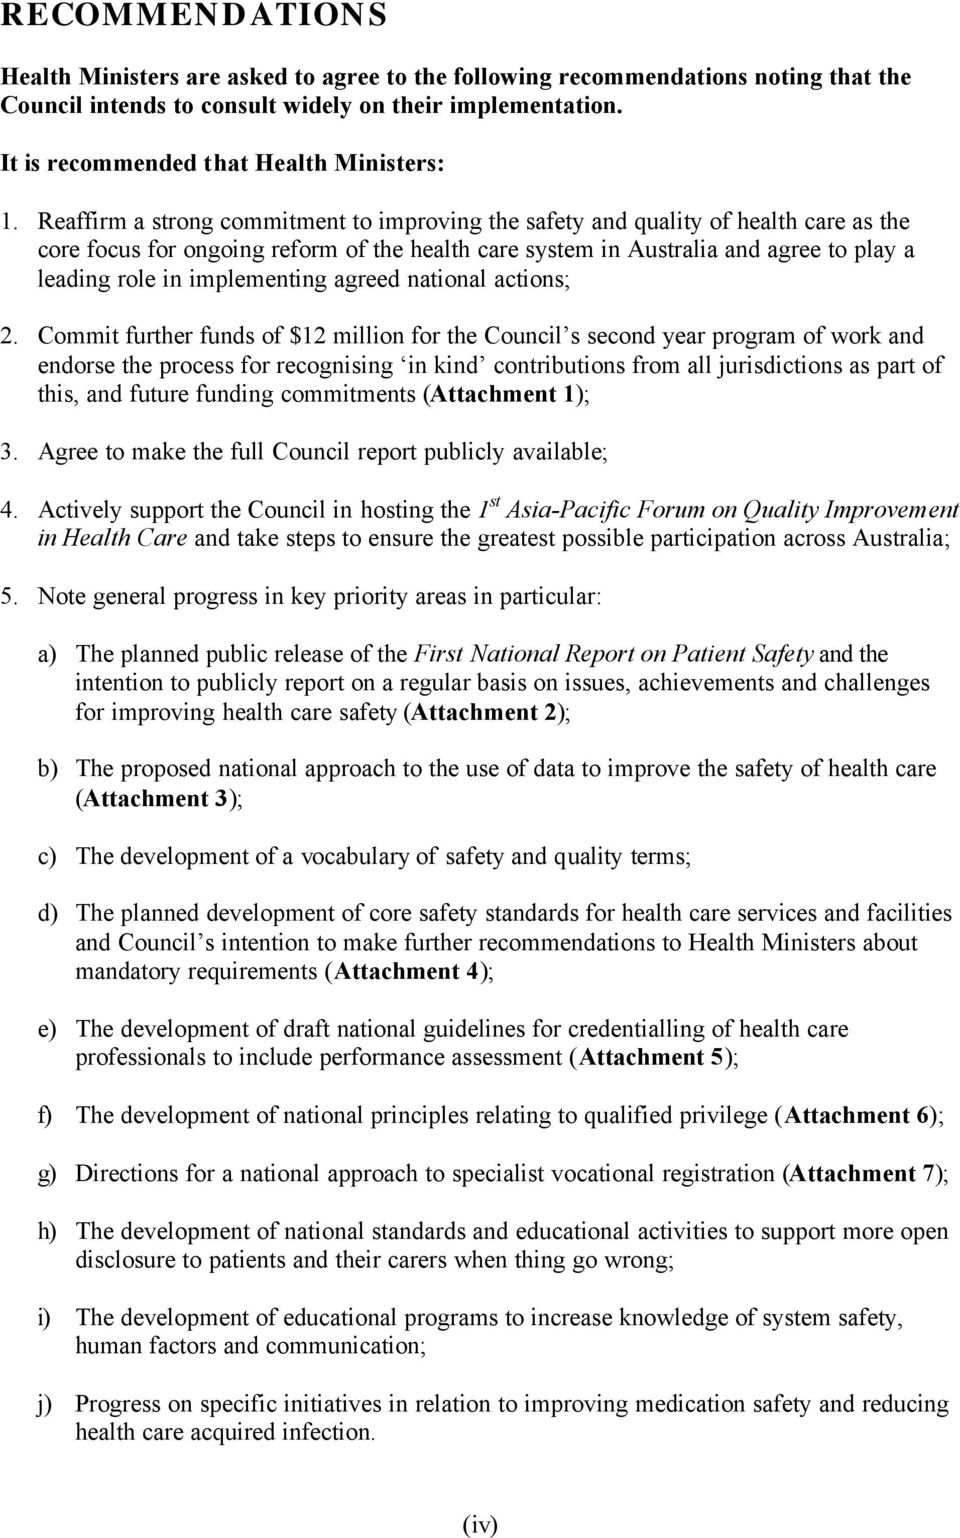 Reaffirm a strong commitment to improving the safety and quality of health care as the core focus for ongoing reform of the health care system in Australia and agree to play a leading role in